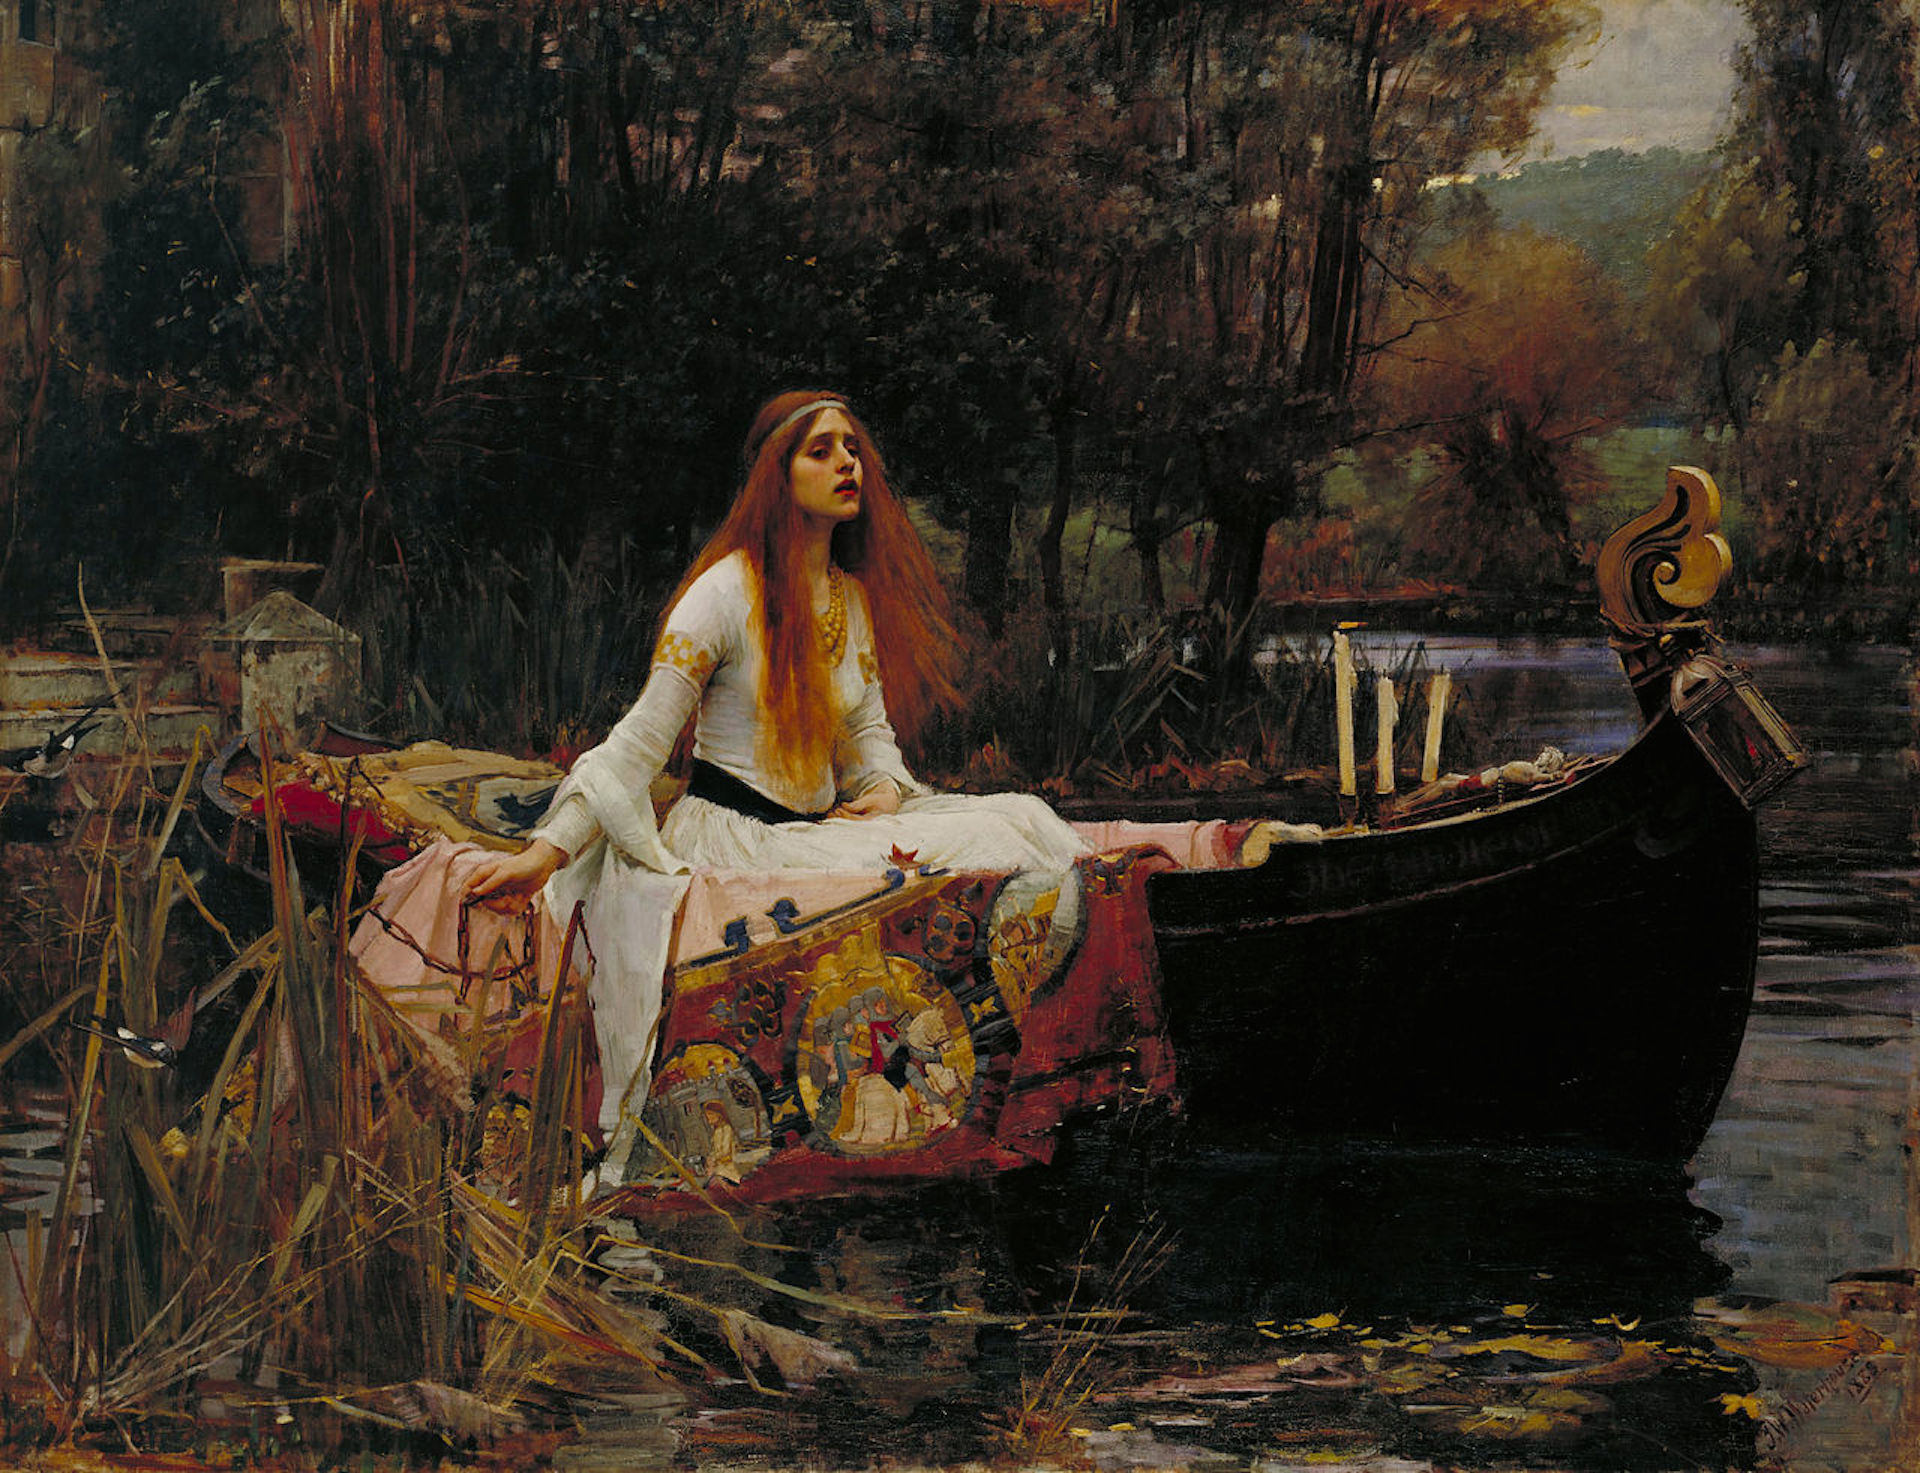 The Lady of Shalott, painting by John William Waterhouse